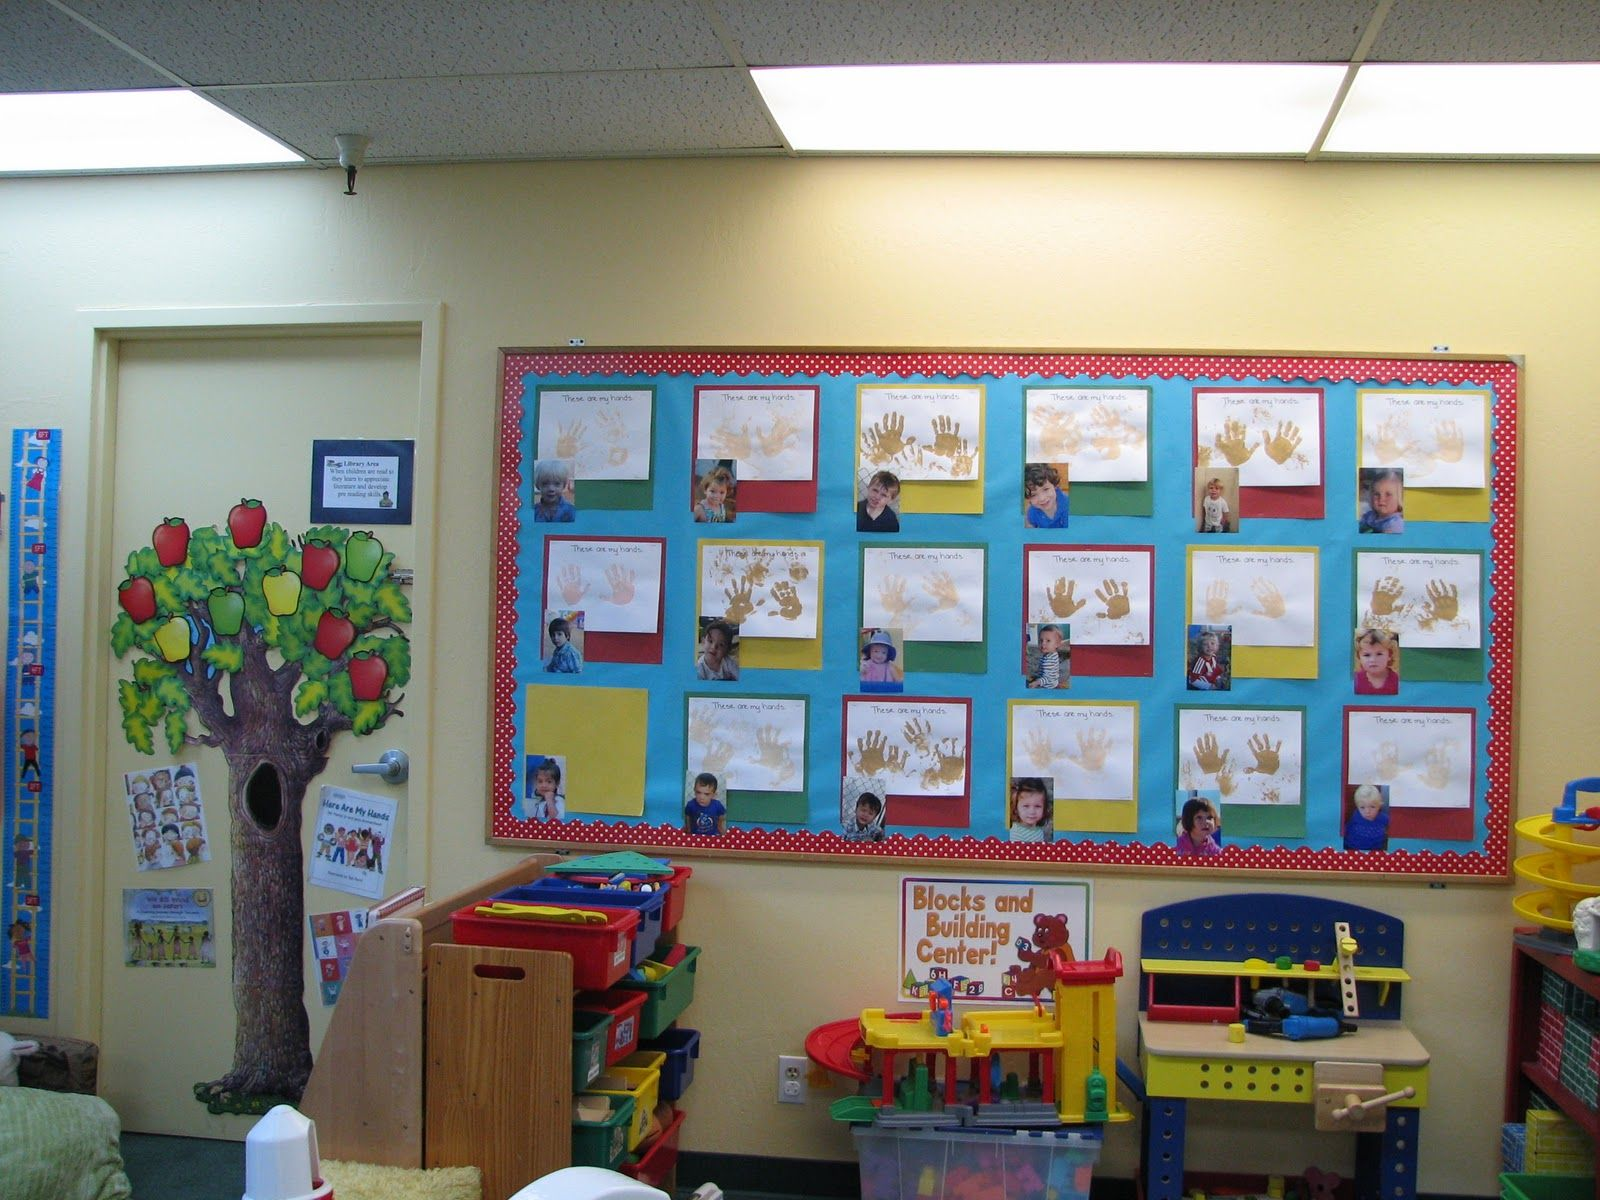 Preschool Ideas For 2 Year Olds All About Me Preschool Ideas For Two